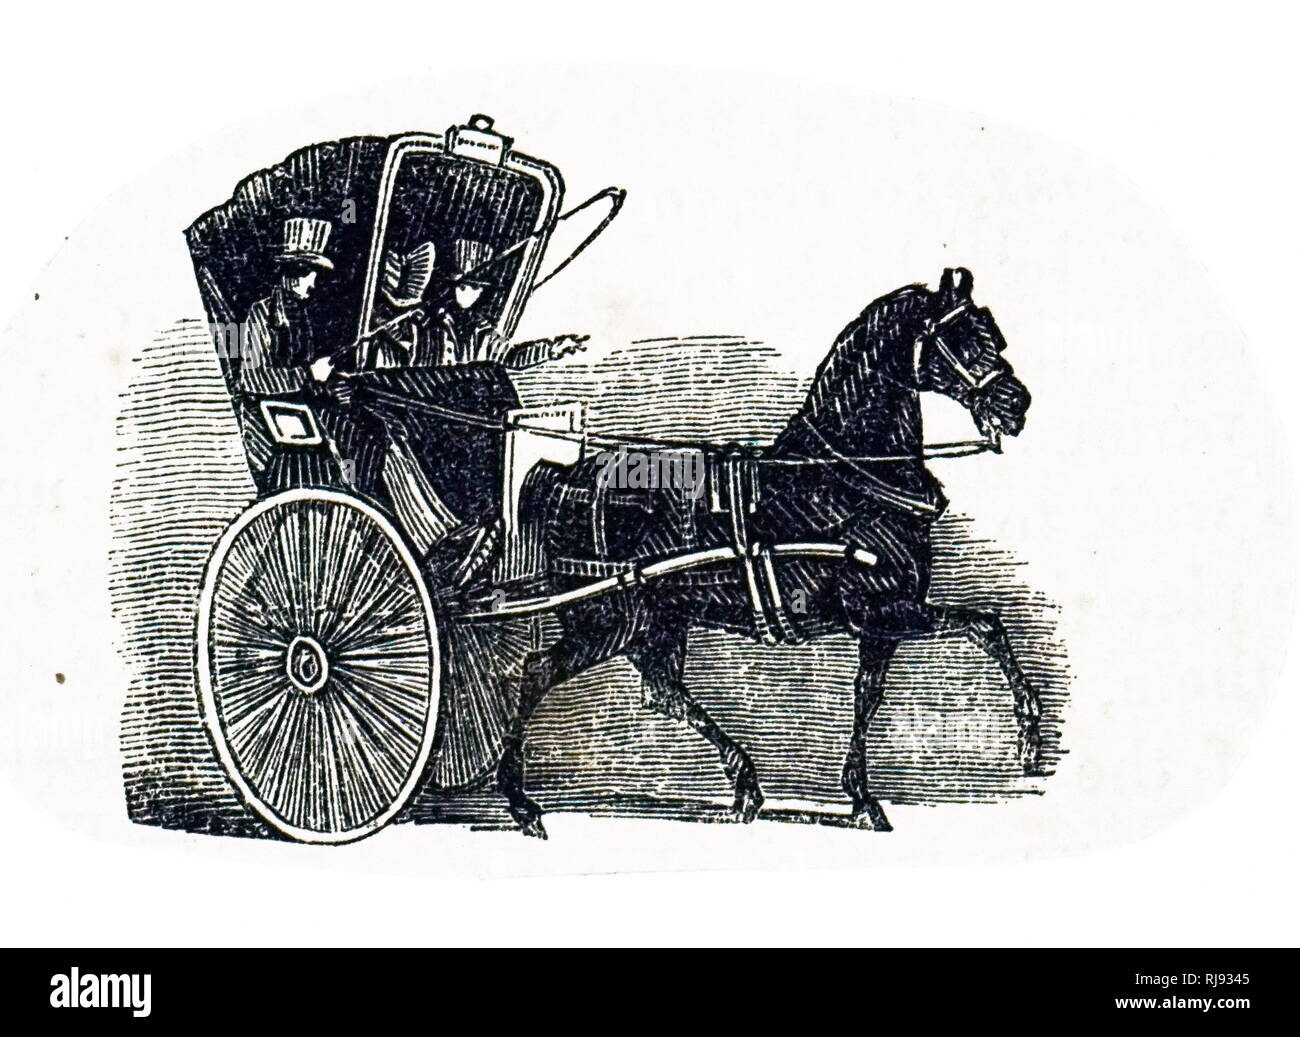 An engraving depicting a Hackney cab. Dated19th century - Stock Image